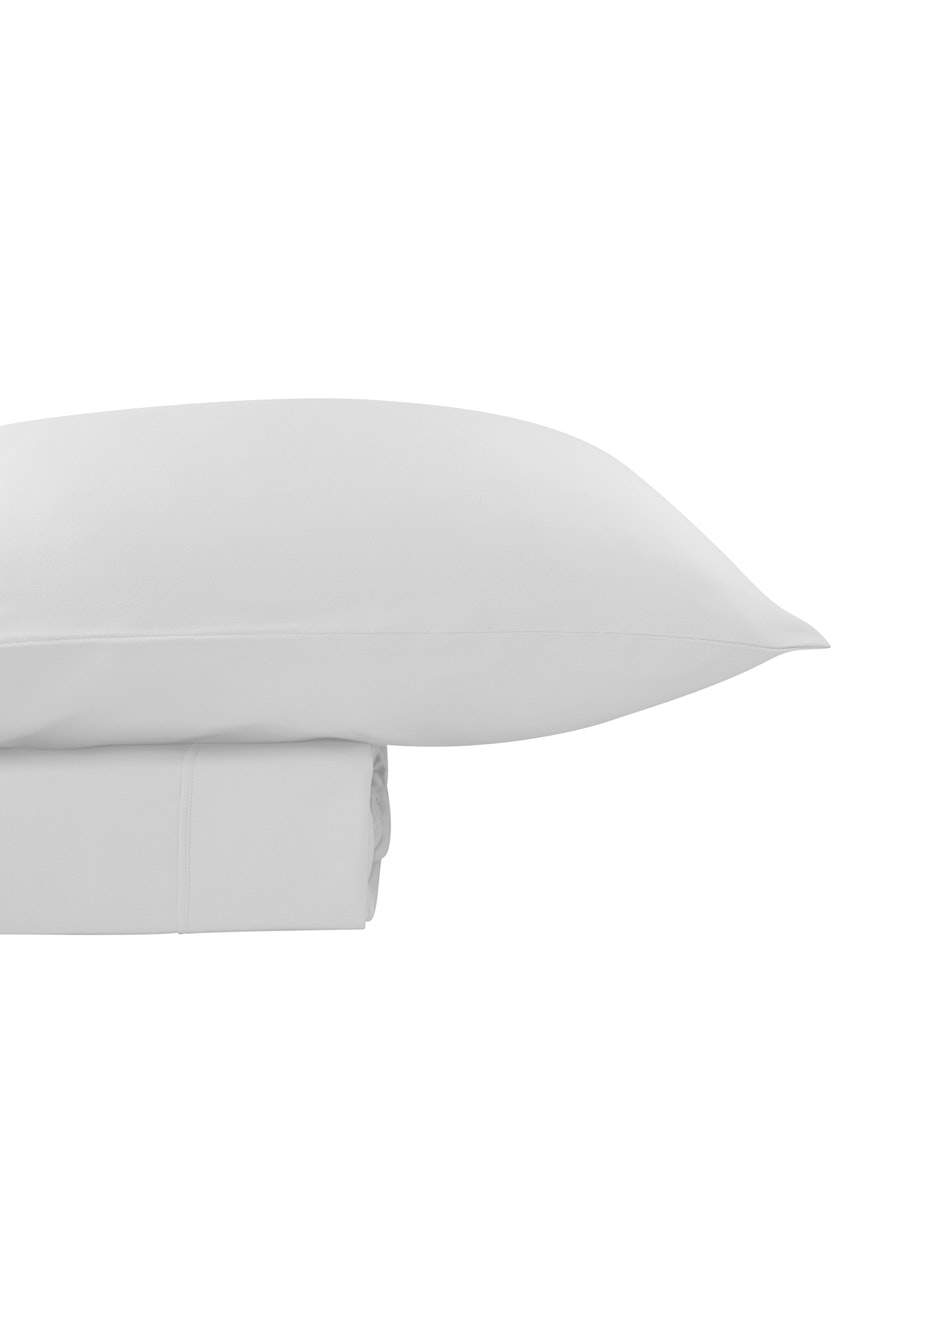 Thermal Flannel Sheet Sets - White - Double Bed